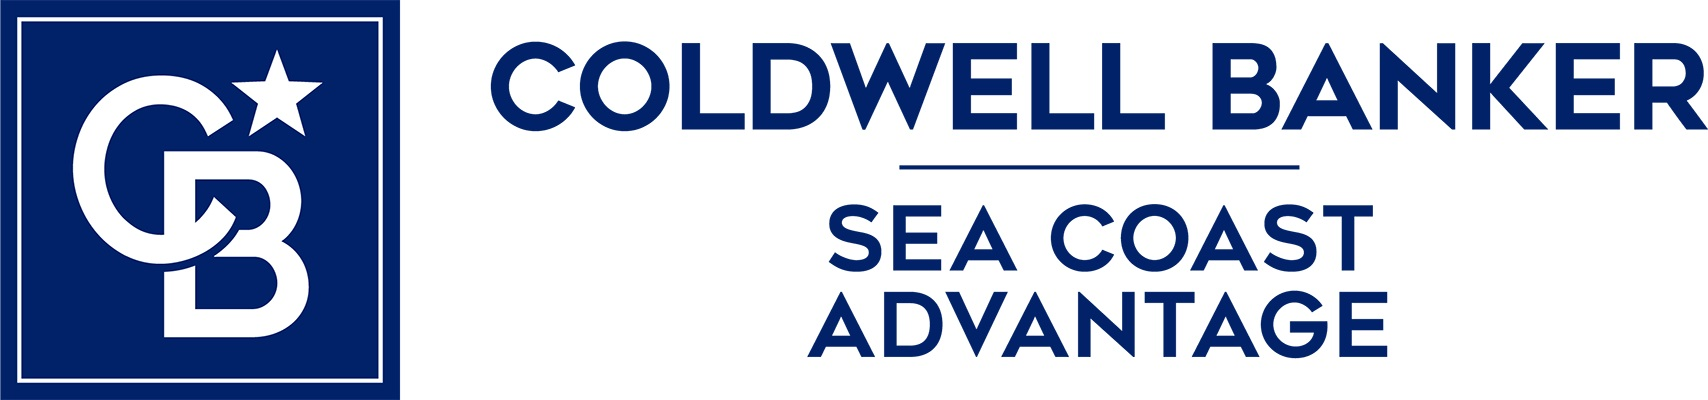 Andrea Arth - Coldwell Banker Sea Coast Advantage Realty